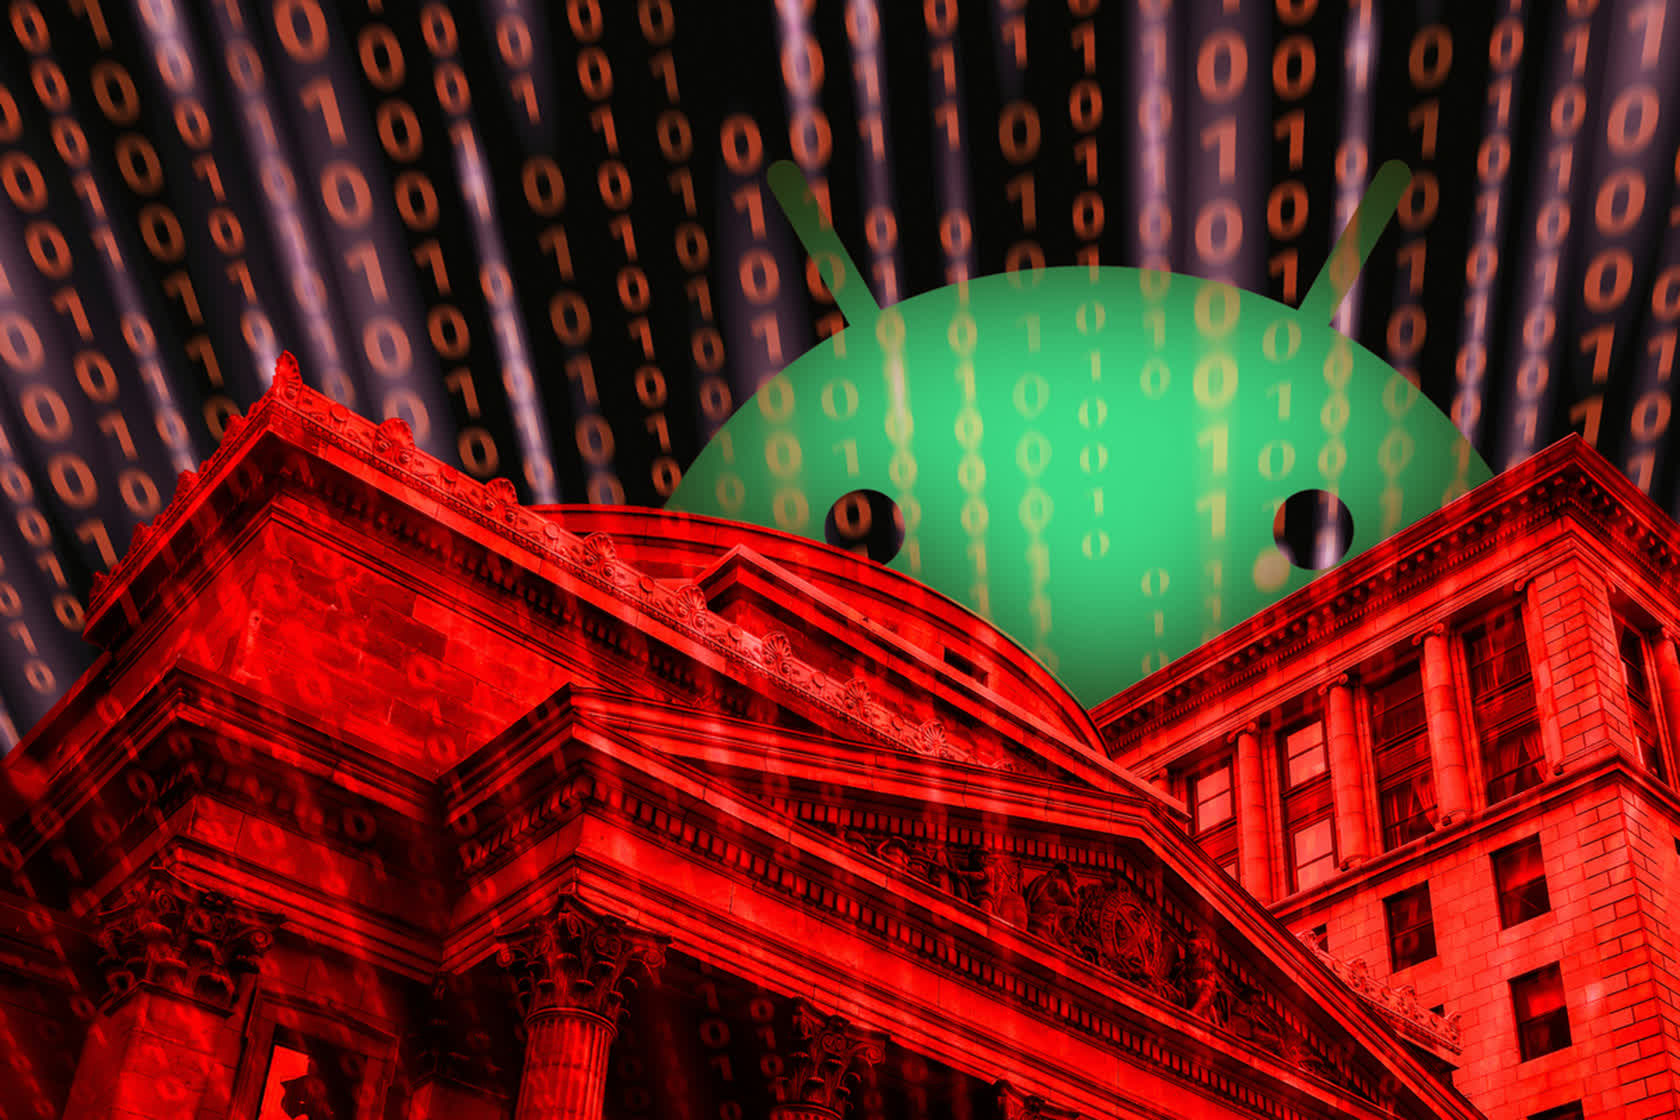 New Android trojan malware has infected more than 10 million Android devices